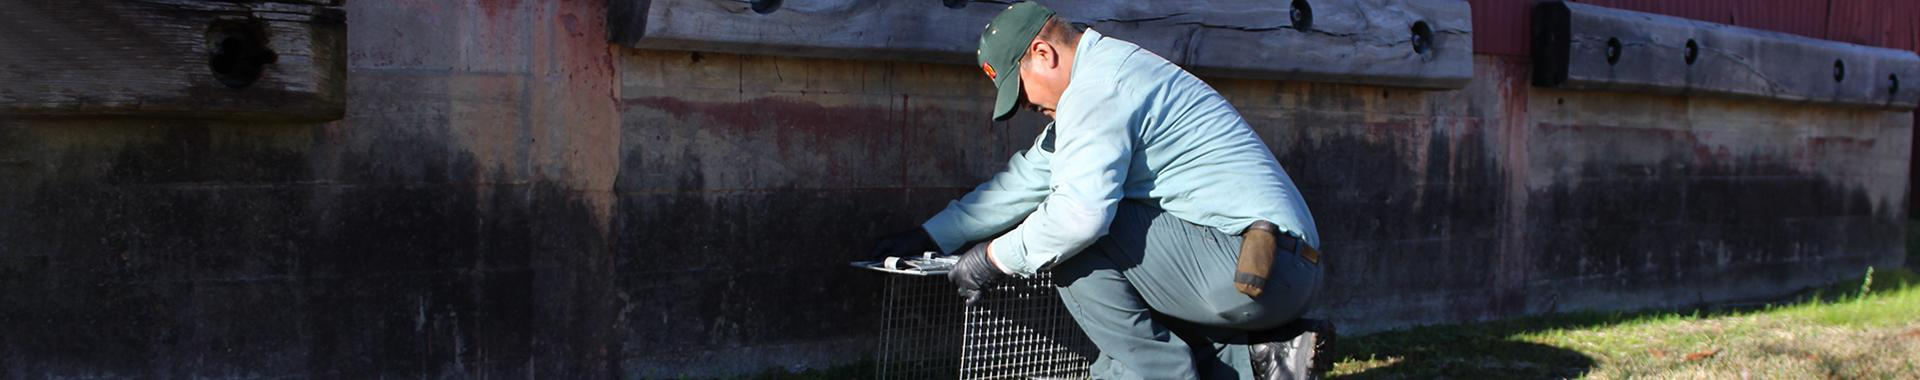 wildlife control bugspert setting trap in beaumont texas